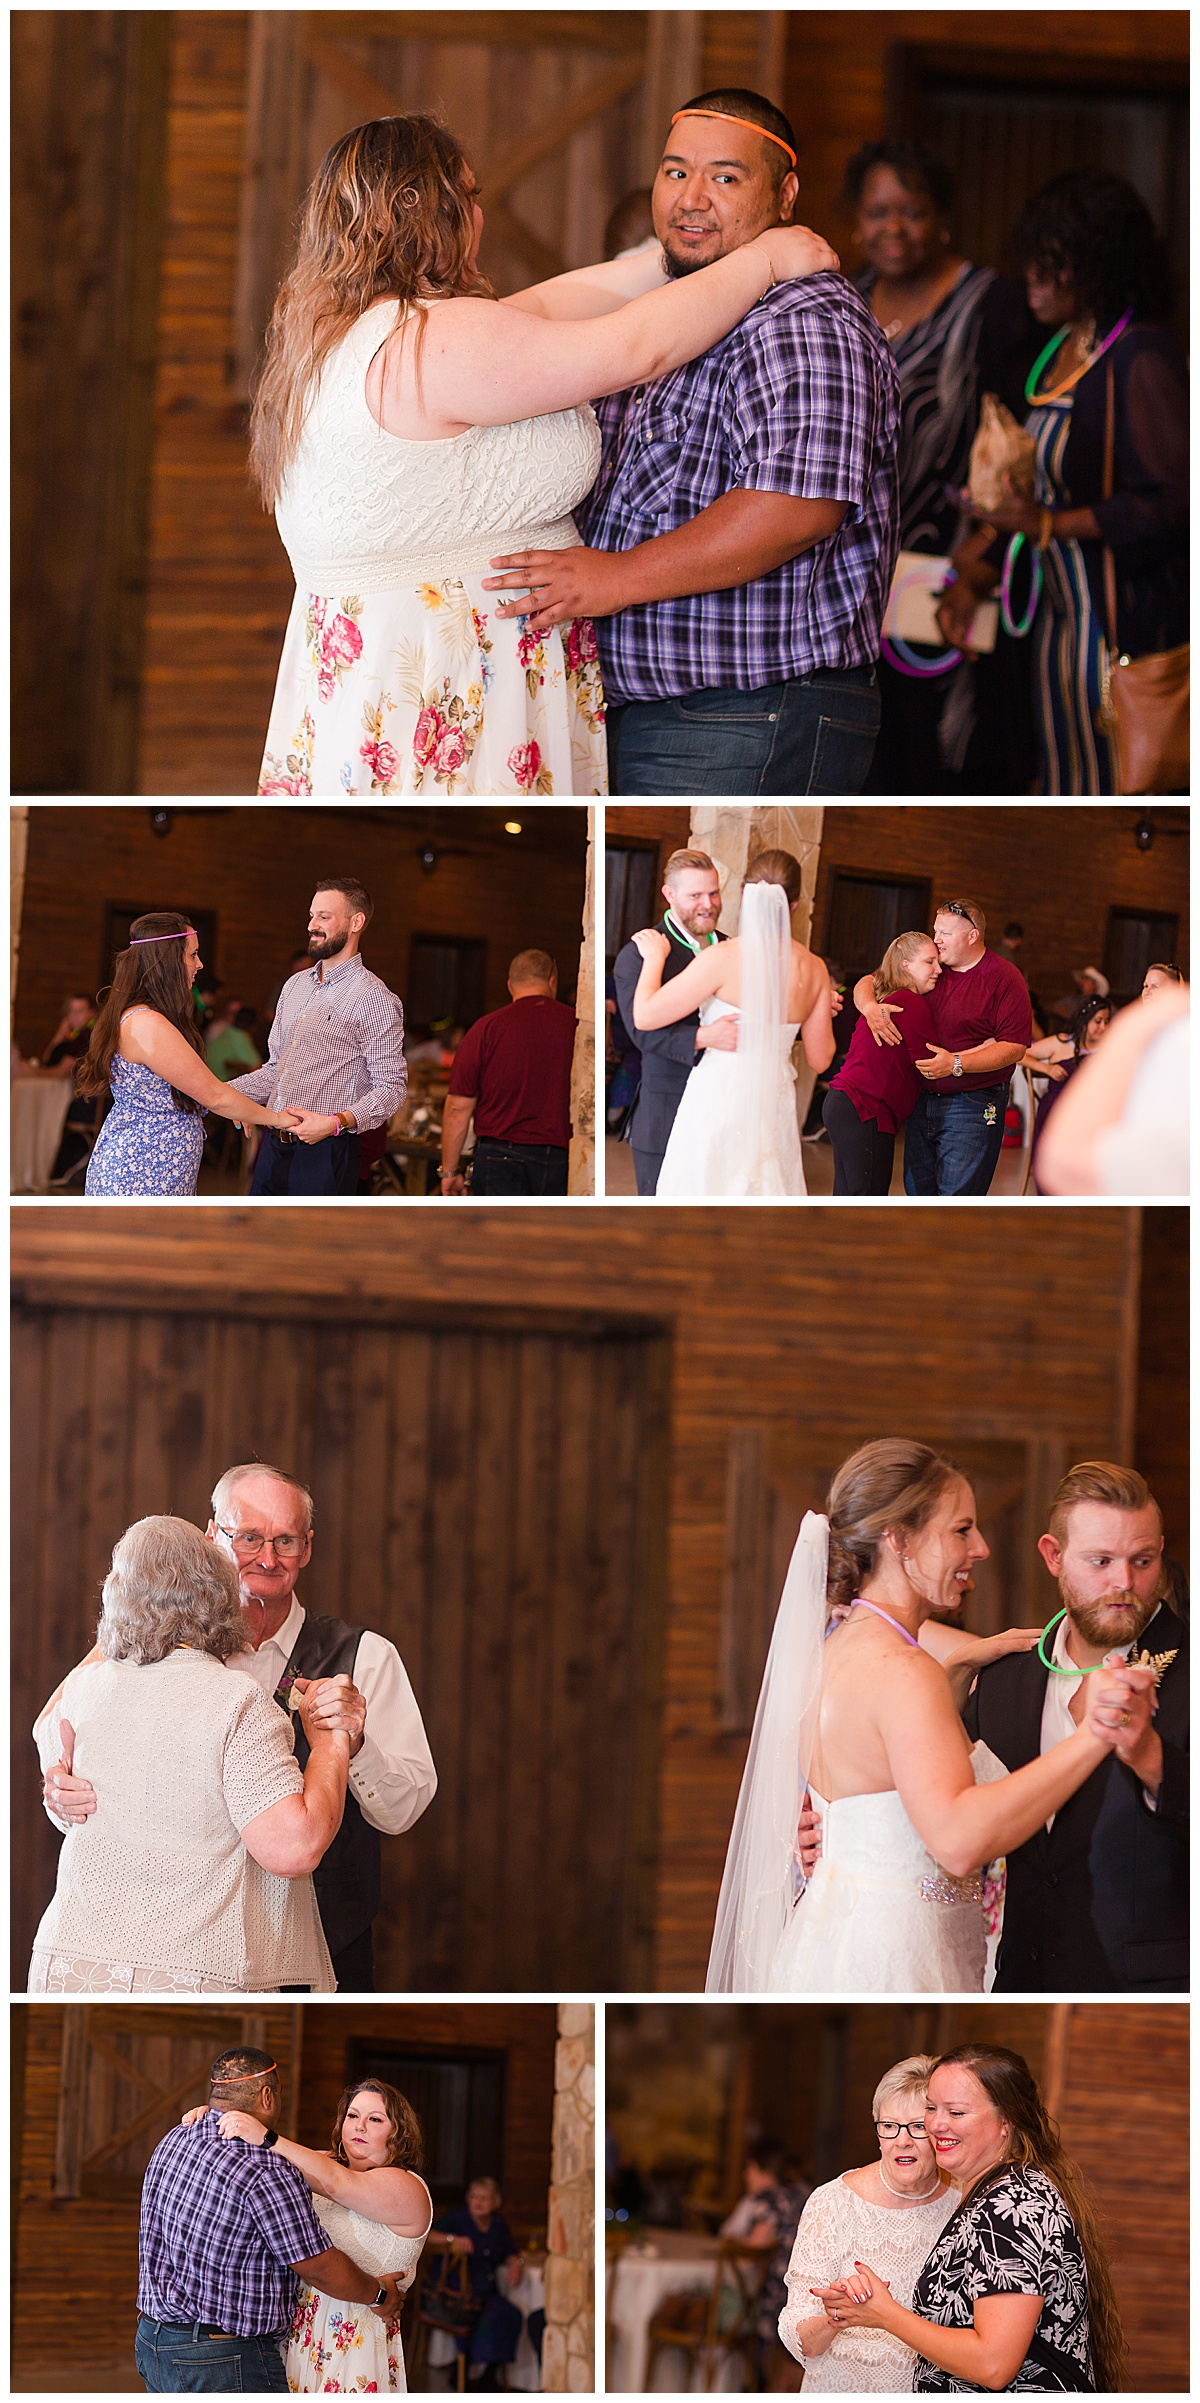 Texas-Magnolia-Bells-Rustic-Wedding-Carly-Barton-Photography_0015.jpg